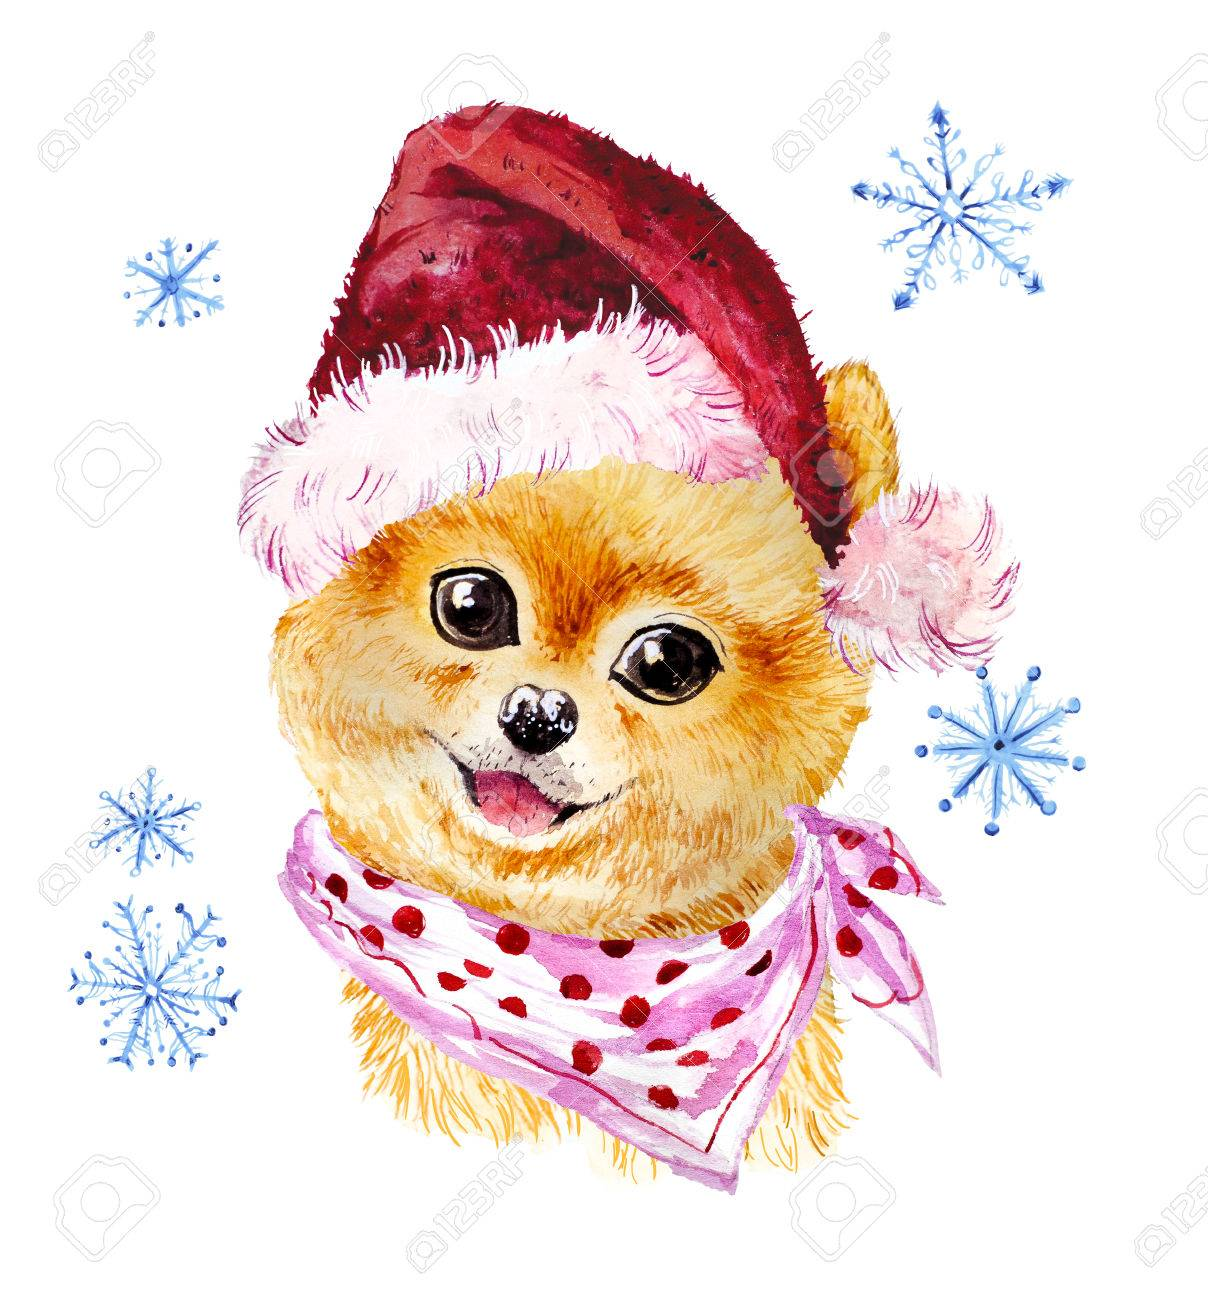 e31c84e47ab Stock Photo - Watercolor artistic xmas dog in santa hat portrait isolated on  white background. Cute pet animal head hand drawn. Pomeranian puppy.